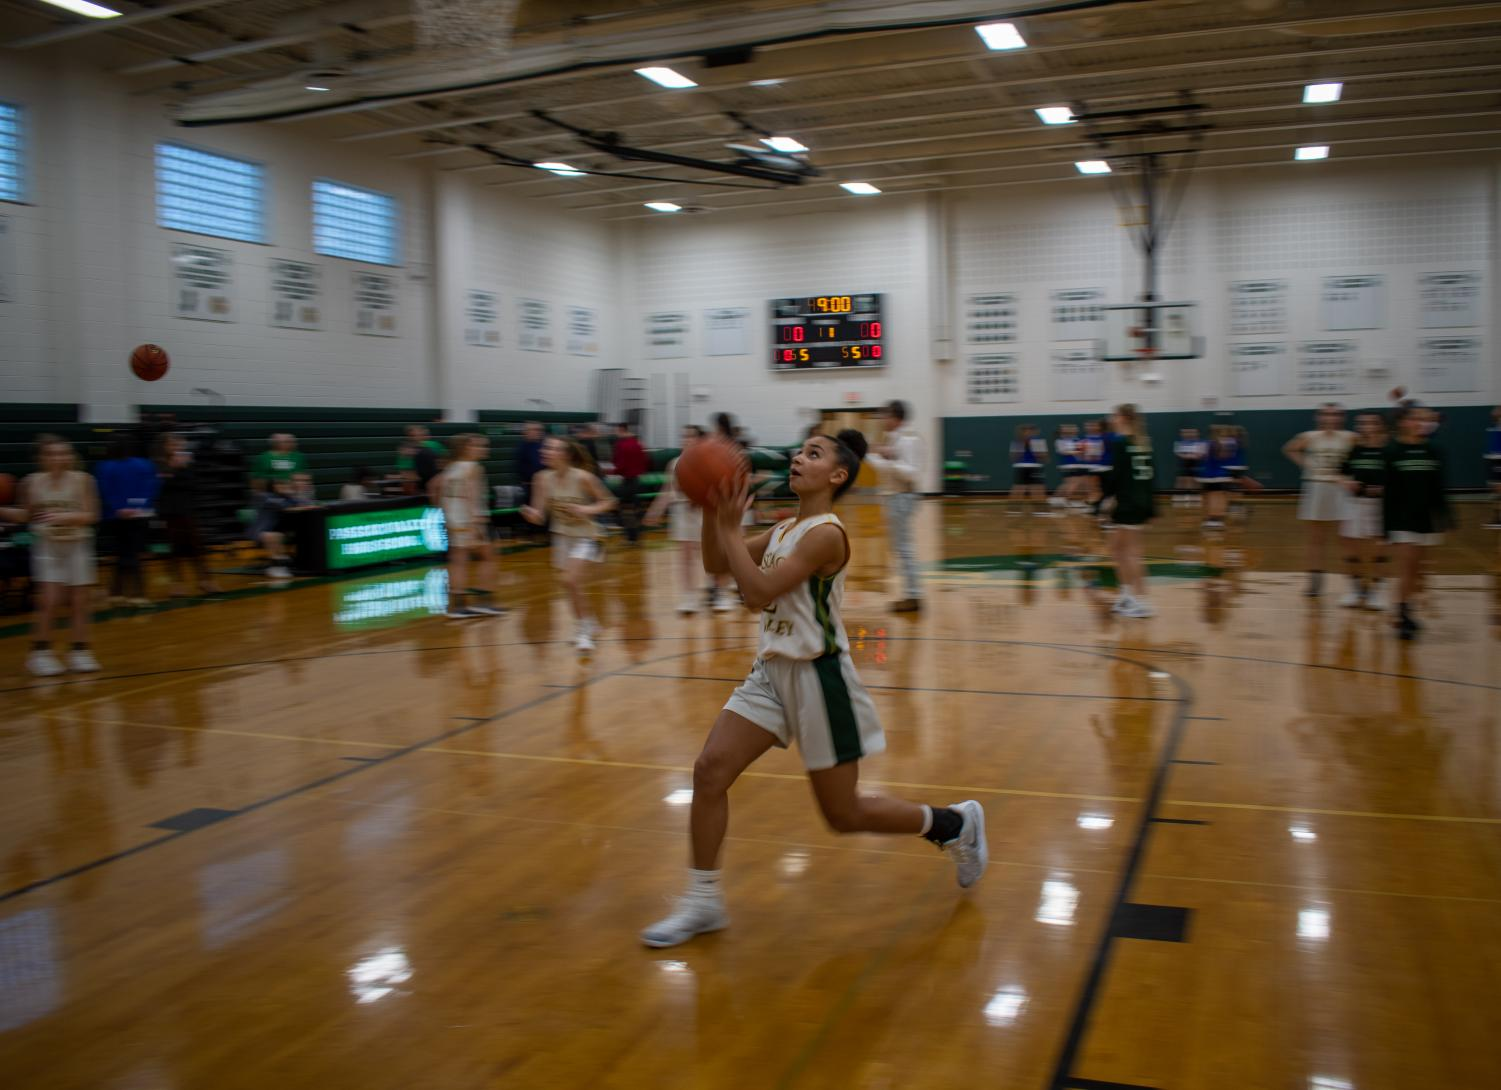 Freshman Lindsay Jennings drives to the basket for a layup before the girls basketball game against Northern Valley Demarest on Thursday, Jan. 16.